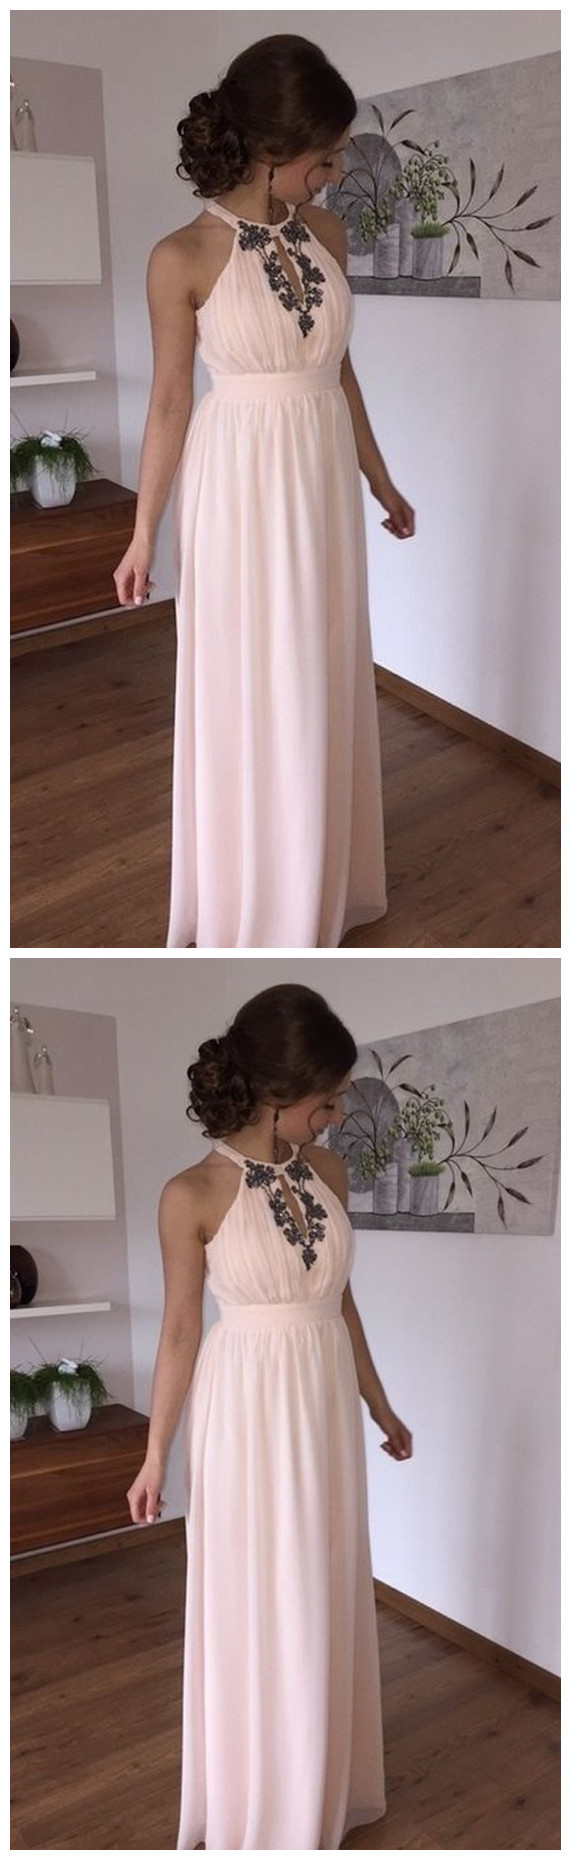 Evening Dress,Sleeveless Prom Dress,Backless Party Dresses,Long Prom Dress